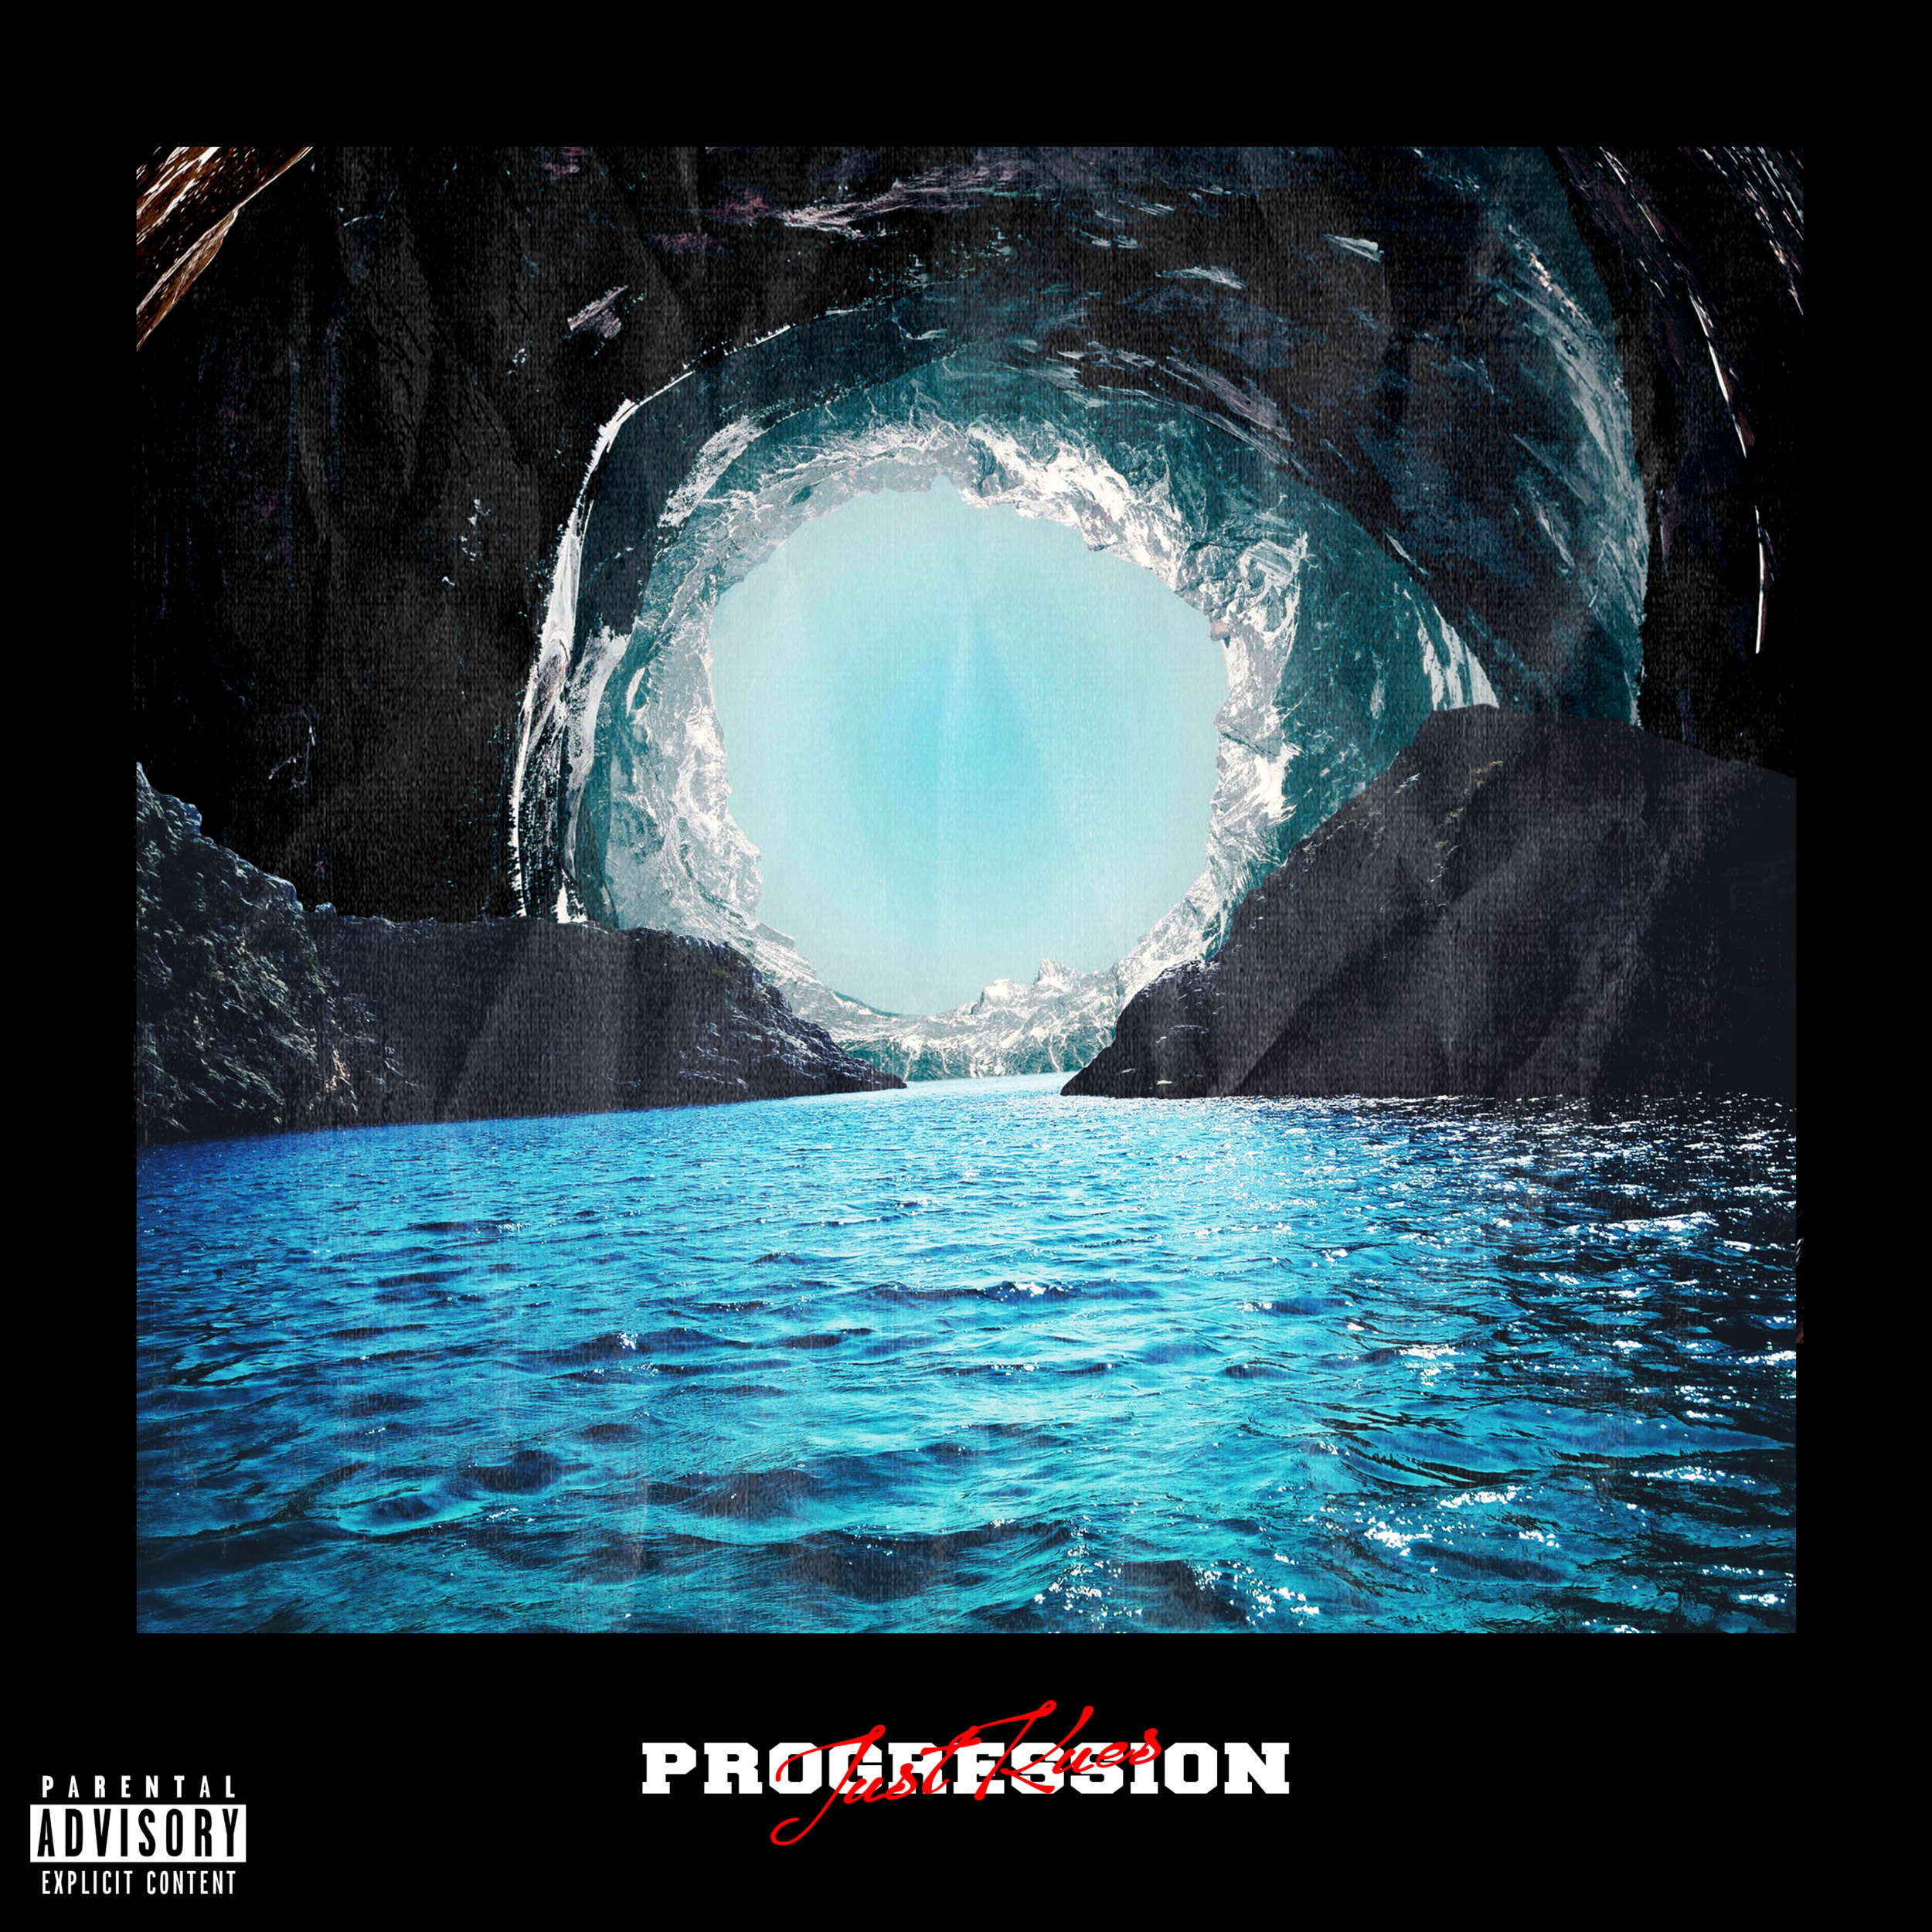 Just Kues 'Progression' Front Cover Design